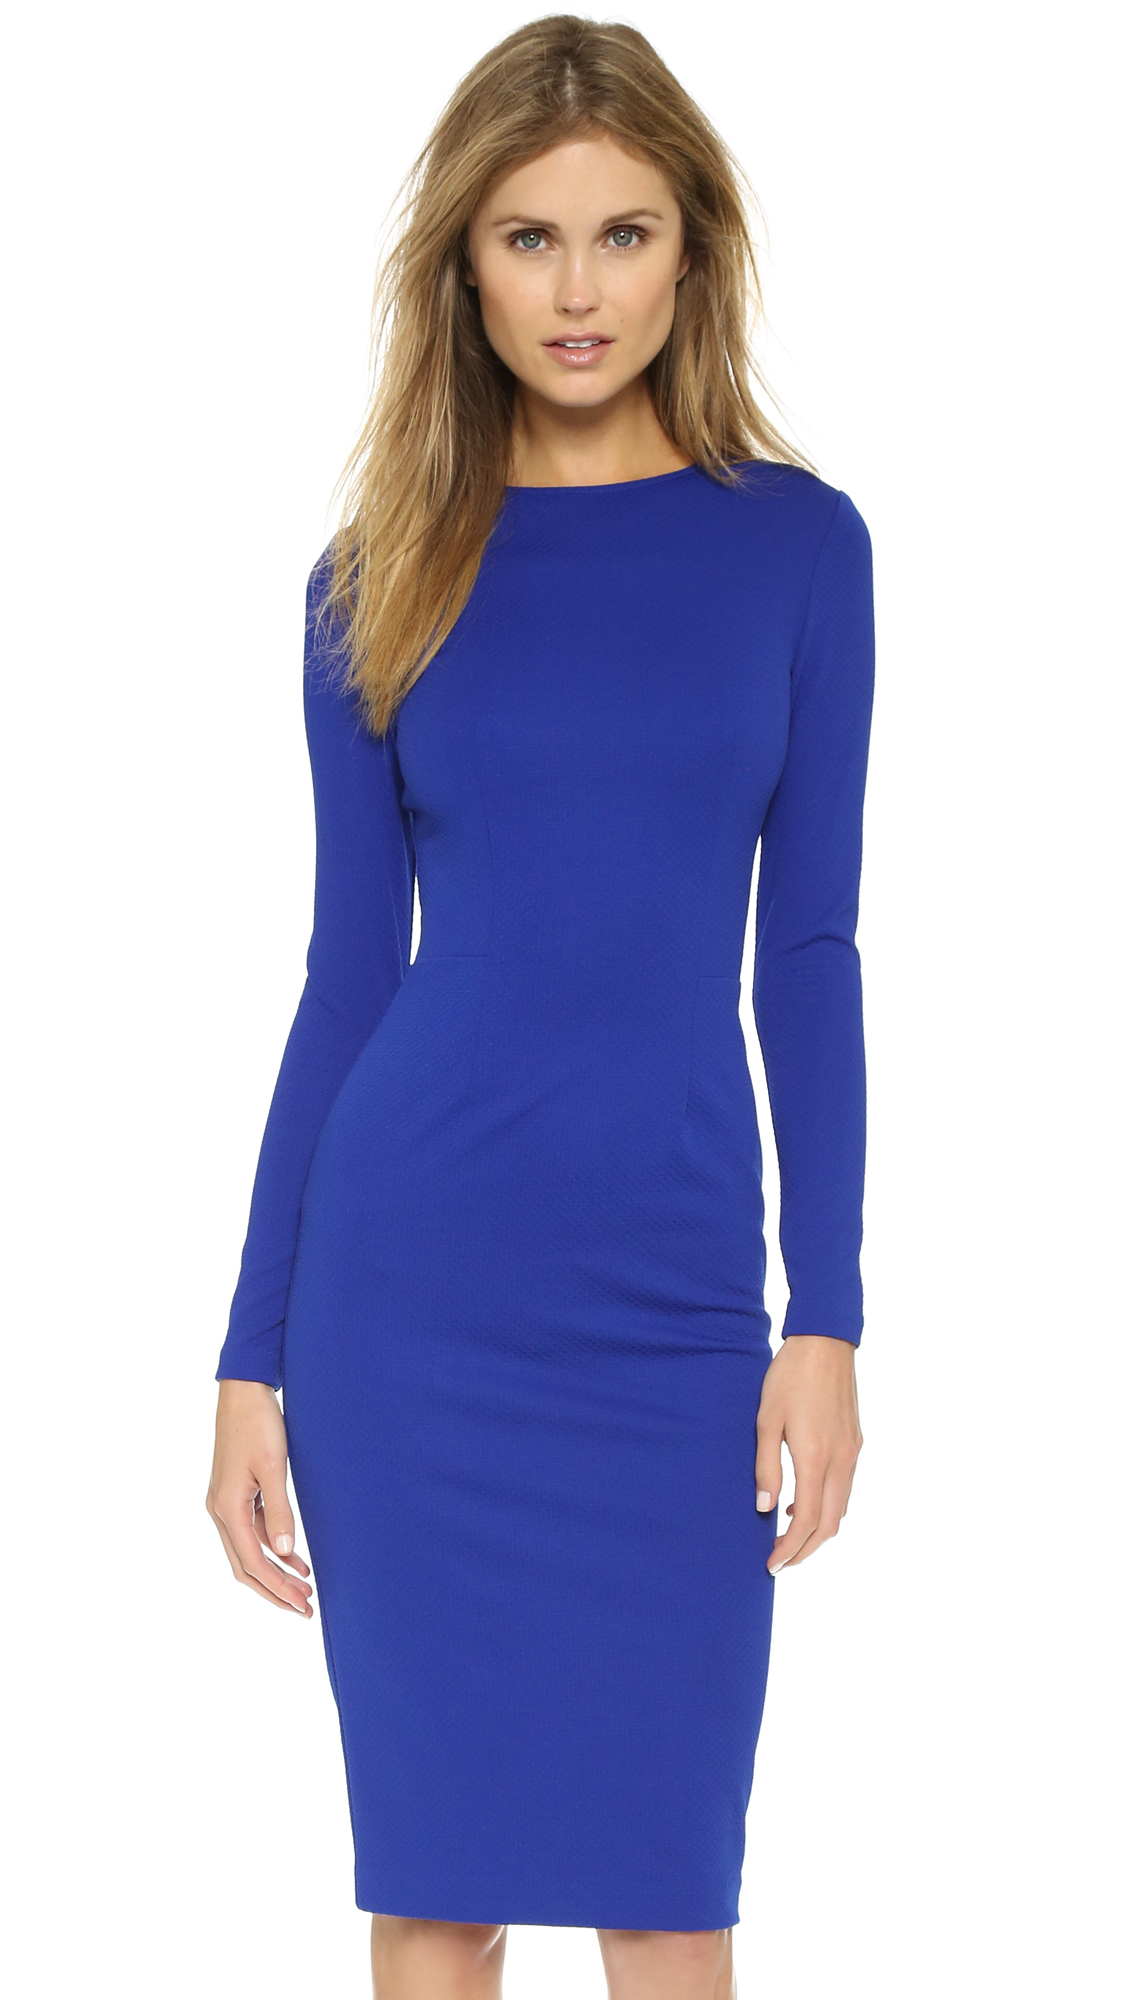 Shop for blue long sleeve dress online at Target. Free shipping on purchases over $35 and save 5% every day with your Target REDcard.